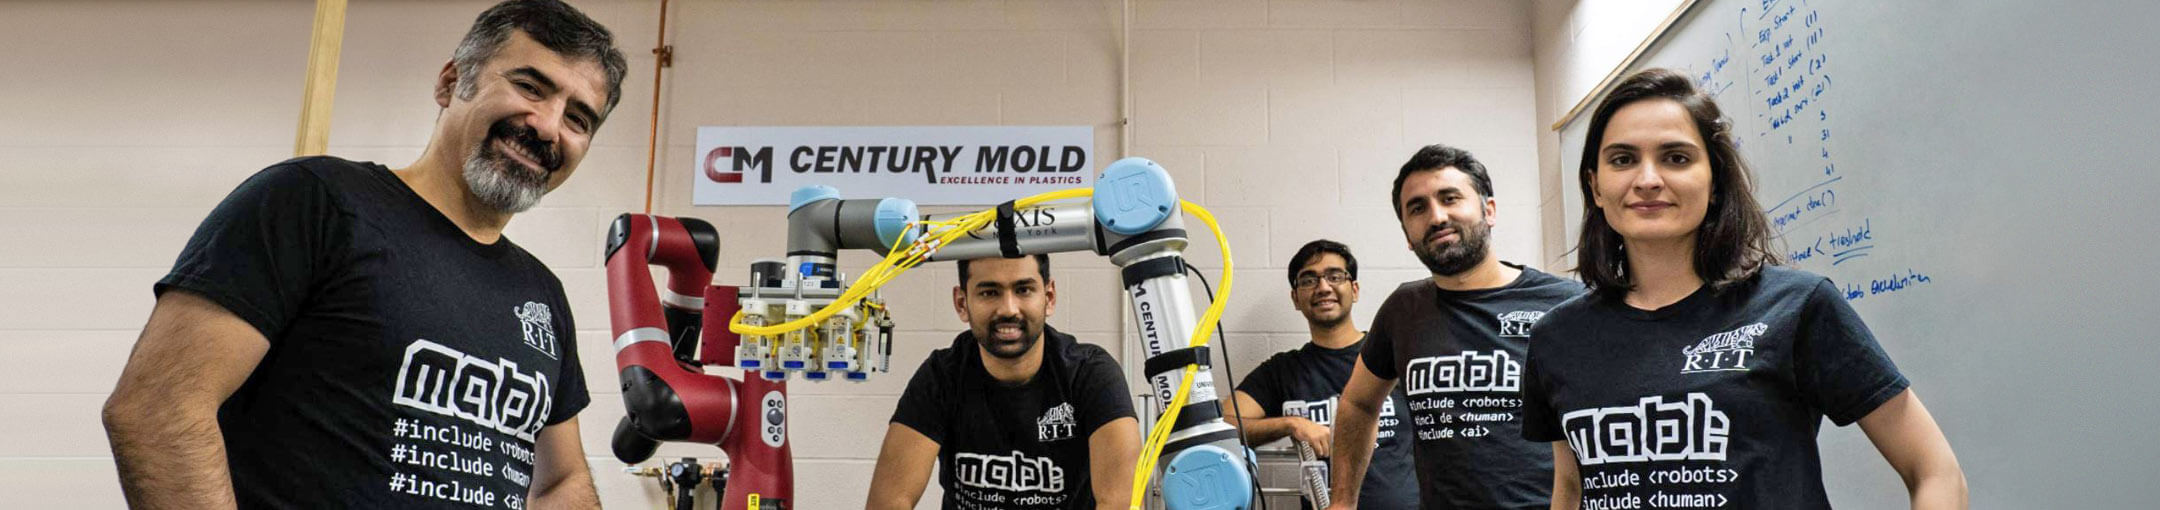 A group shot of people surrounding a robotic arm labeled Century Mold.